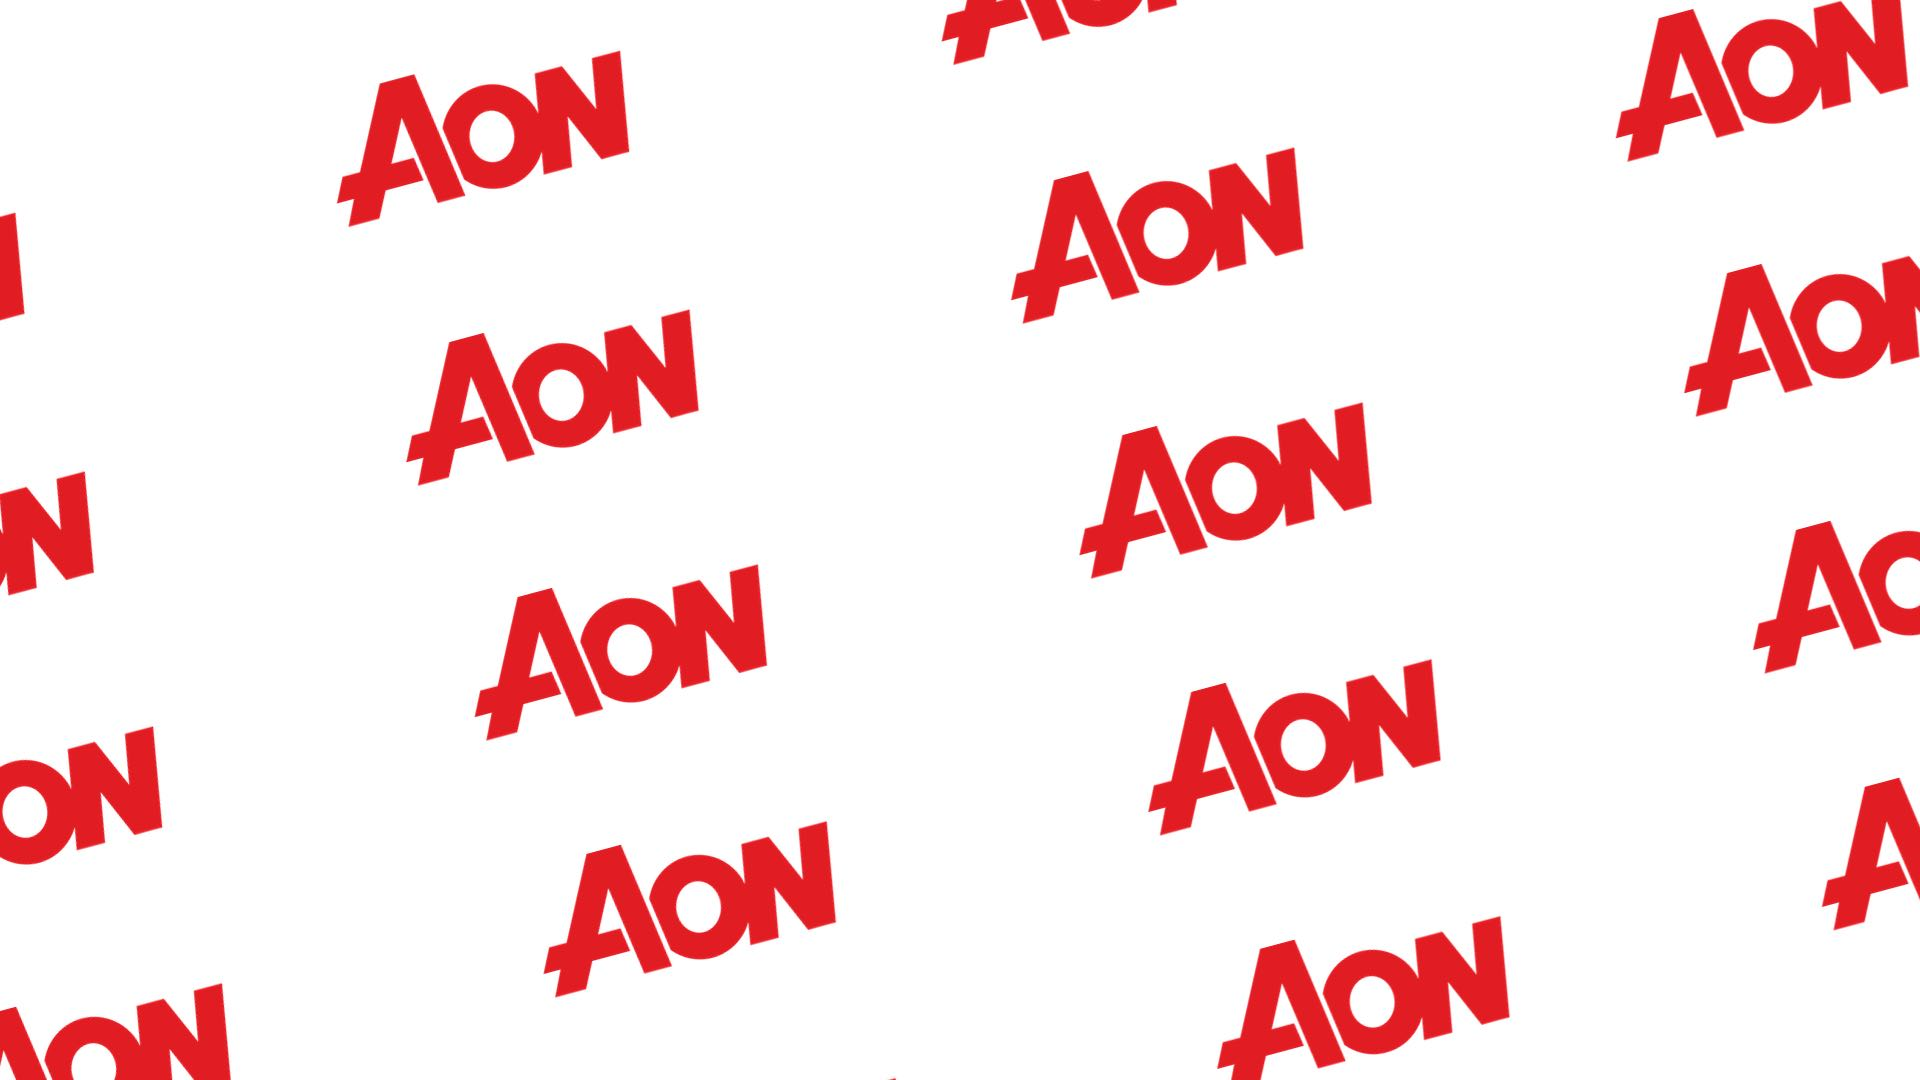 Aon parter portal background